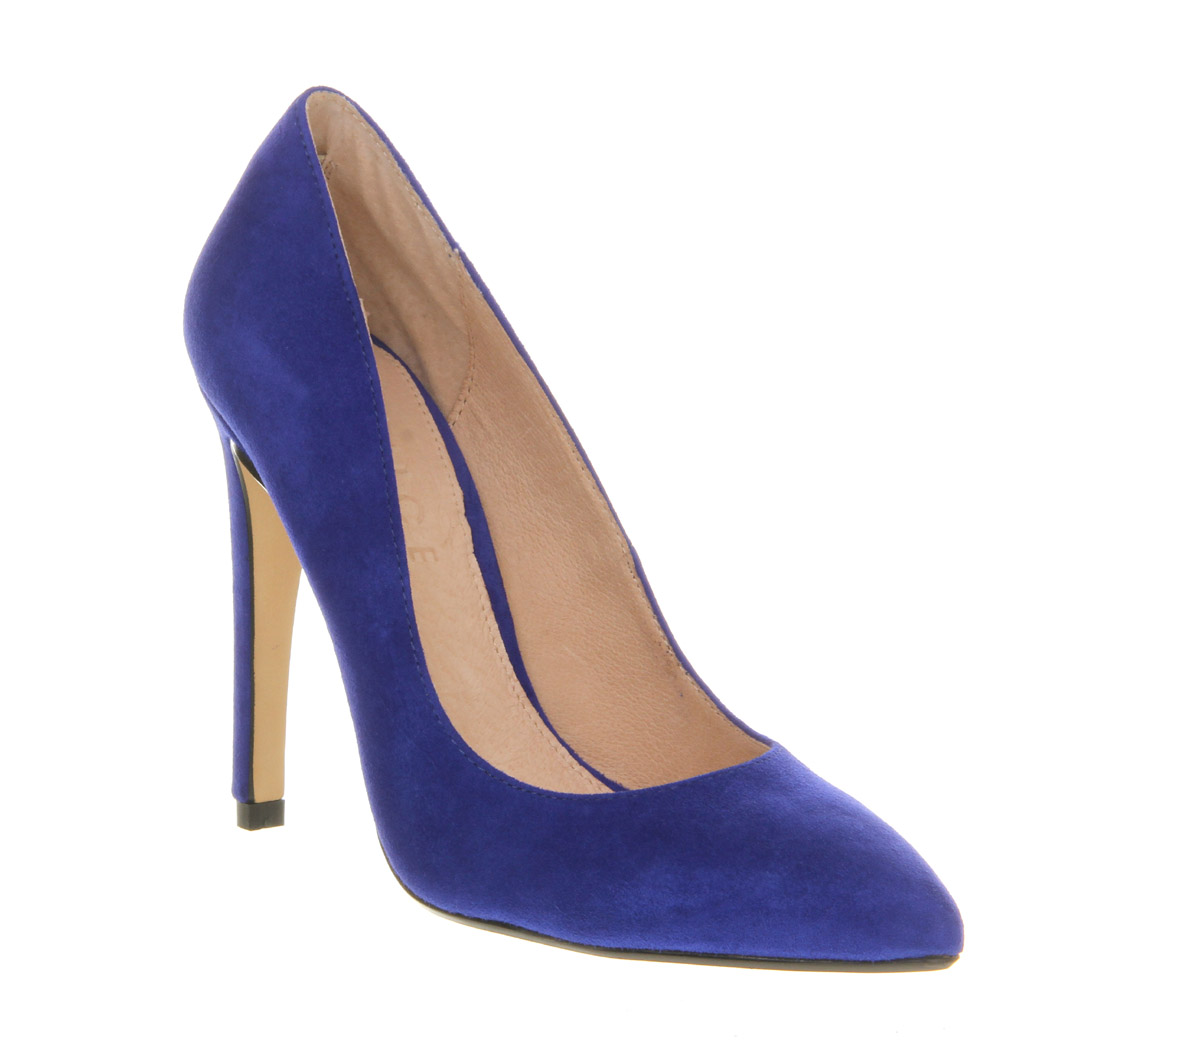 Cobalt blue heels - Heels : Mince His Words